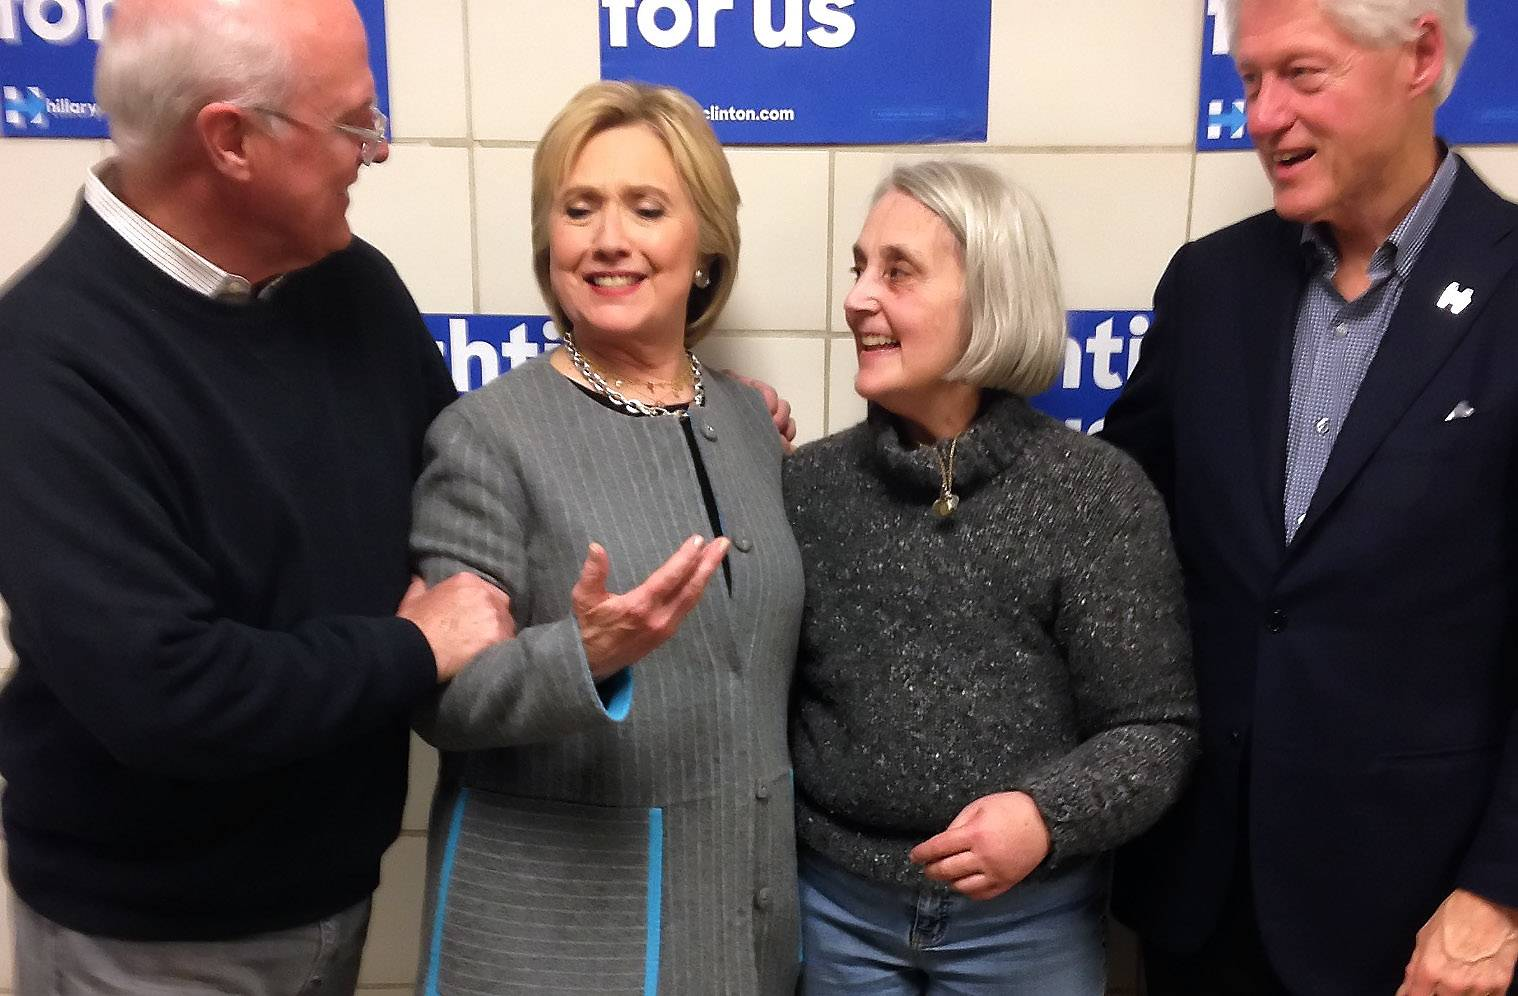 Arlington Heights resident and lifelong Hillary Clinton friend in campaign video